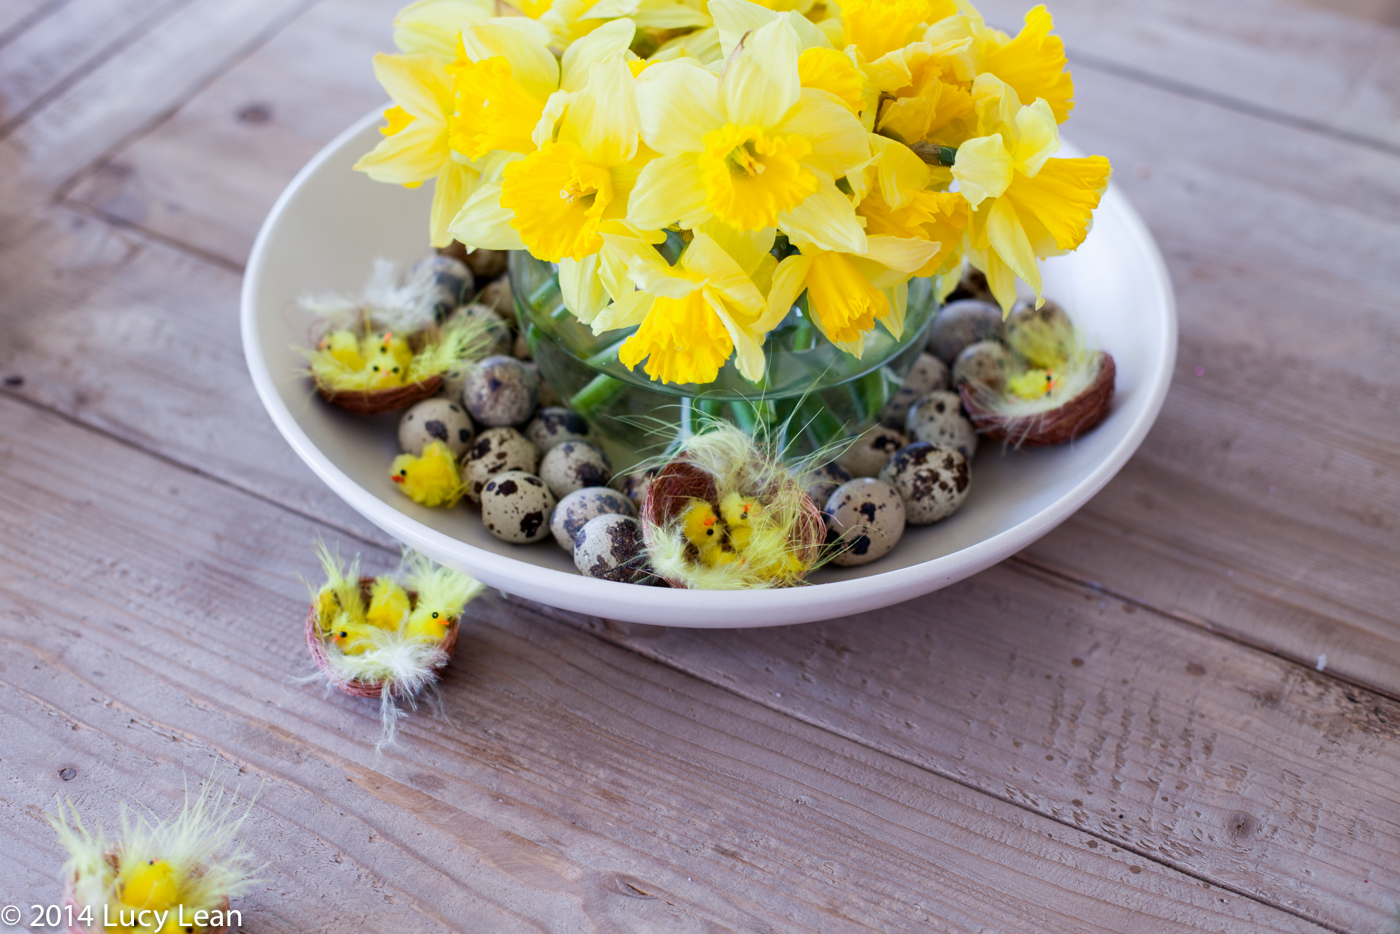 quails eggs with daffodils